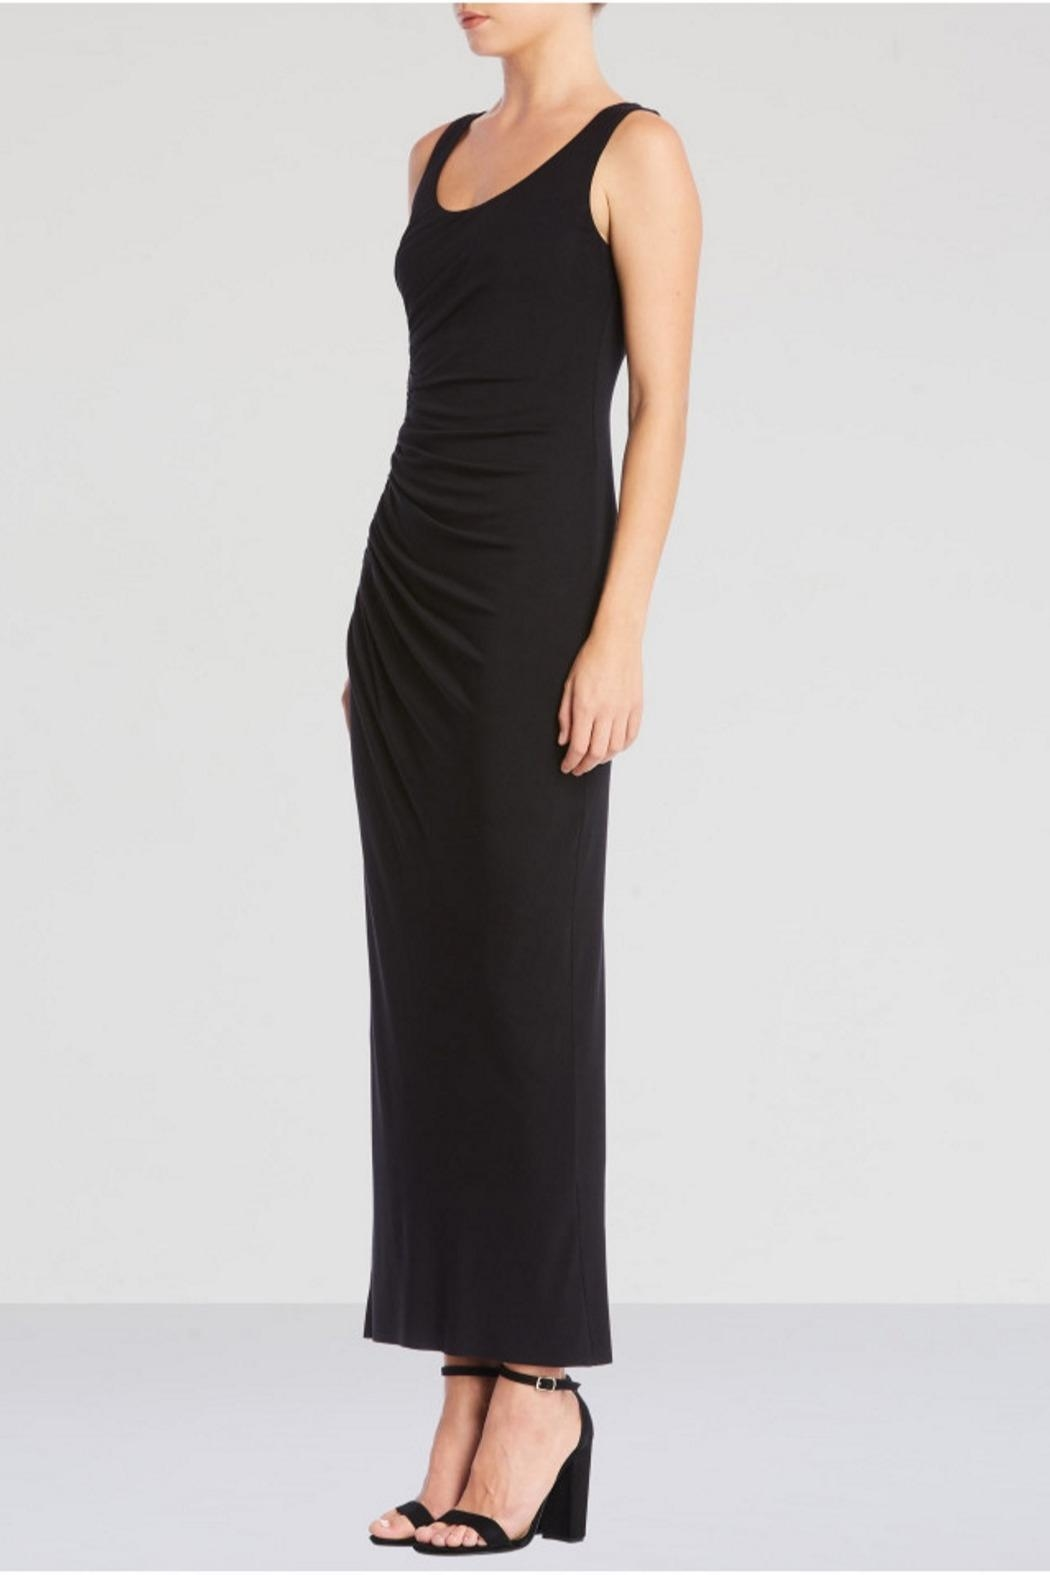 Bailey 44 Drizzle Cake Dress - Side Cropped Image